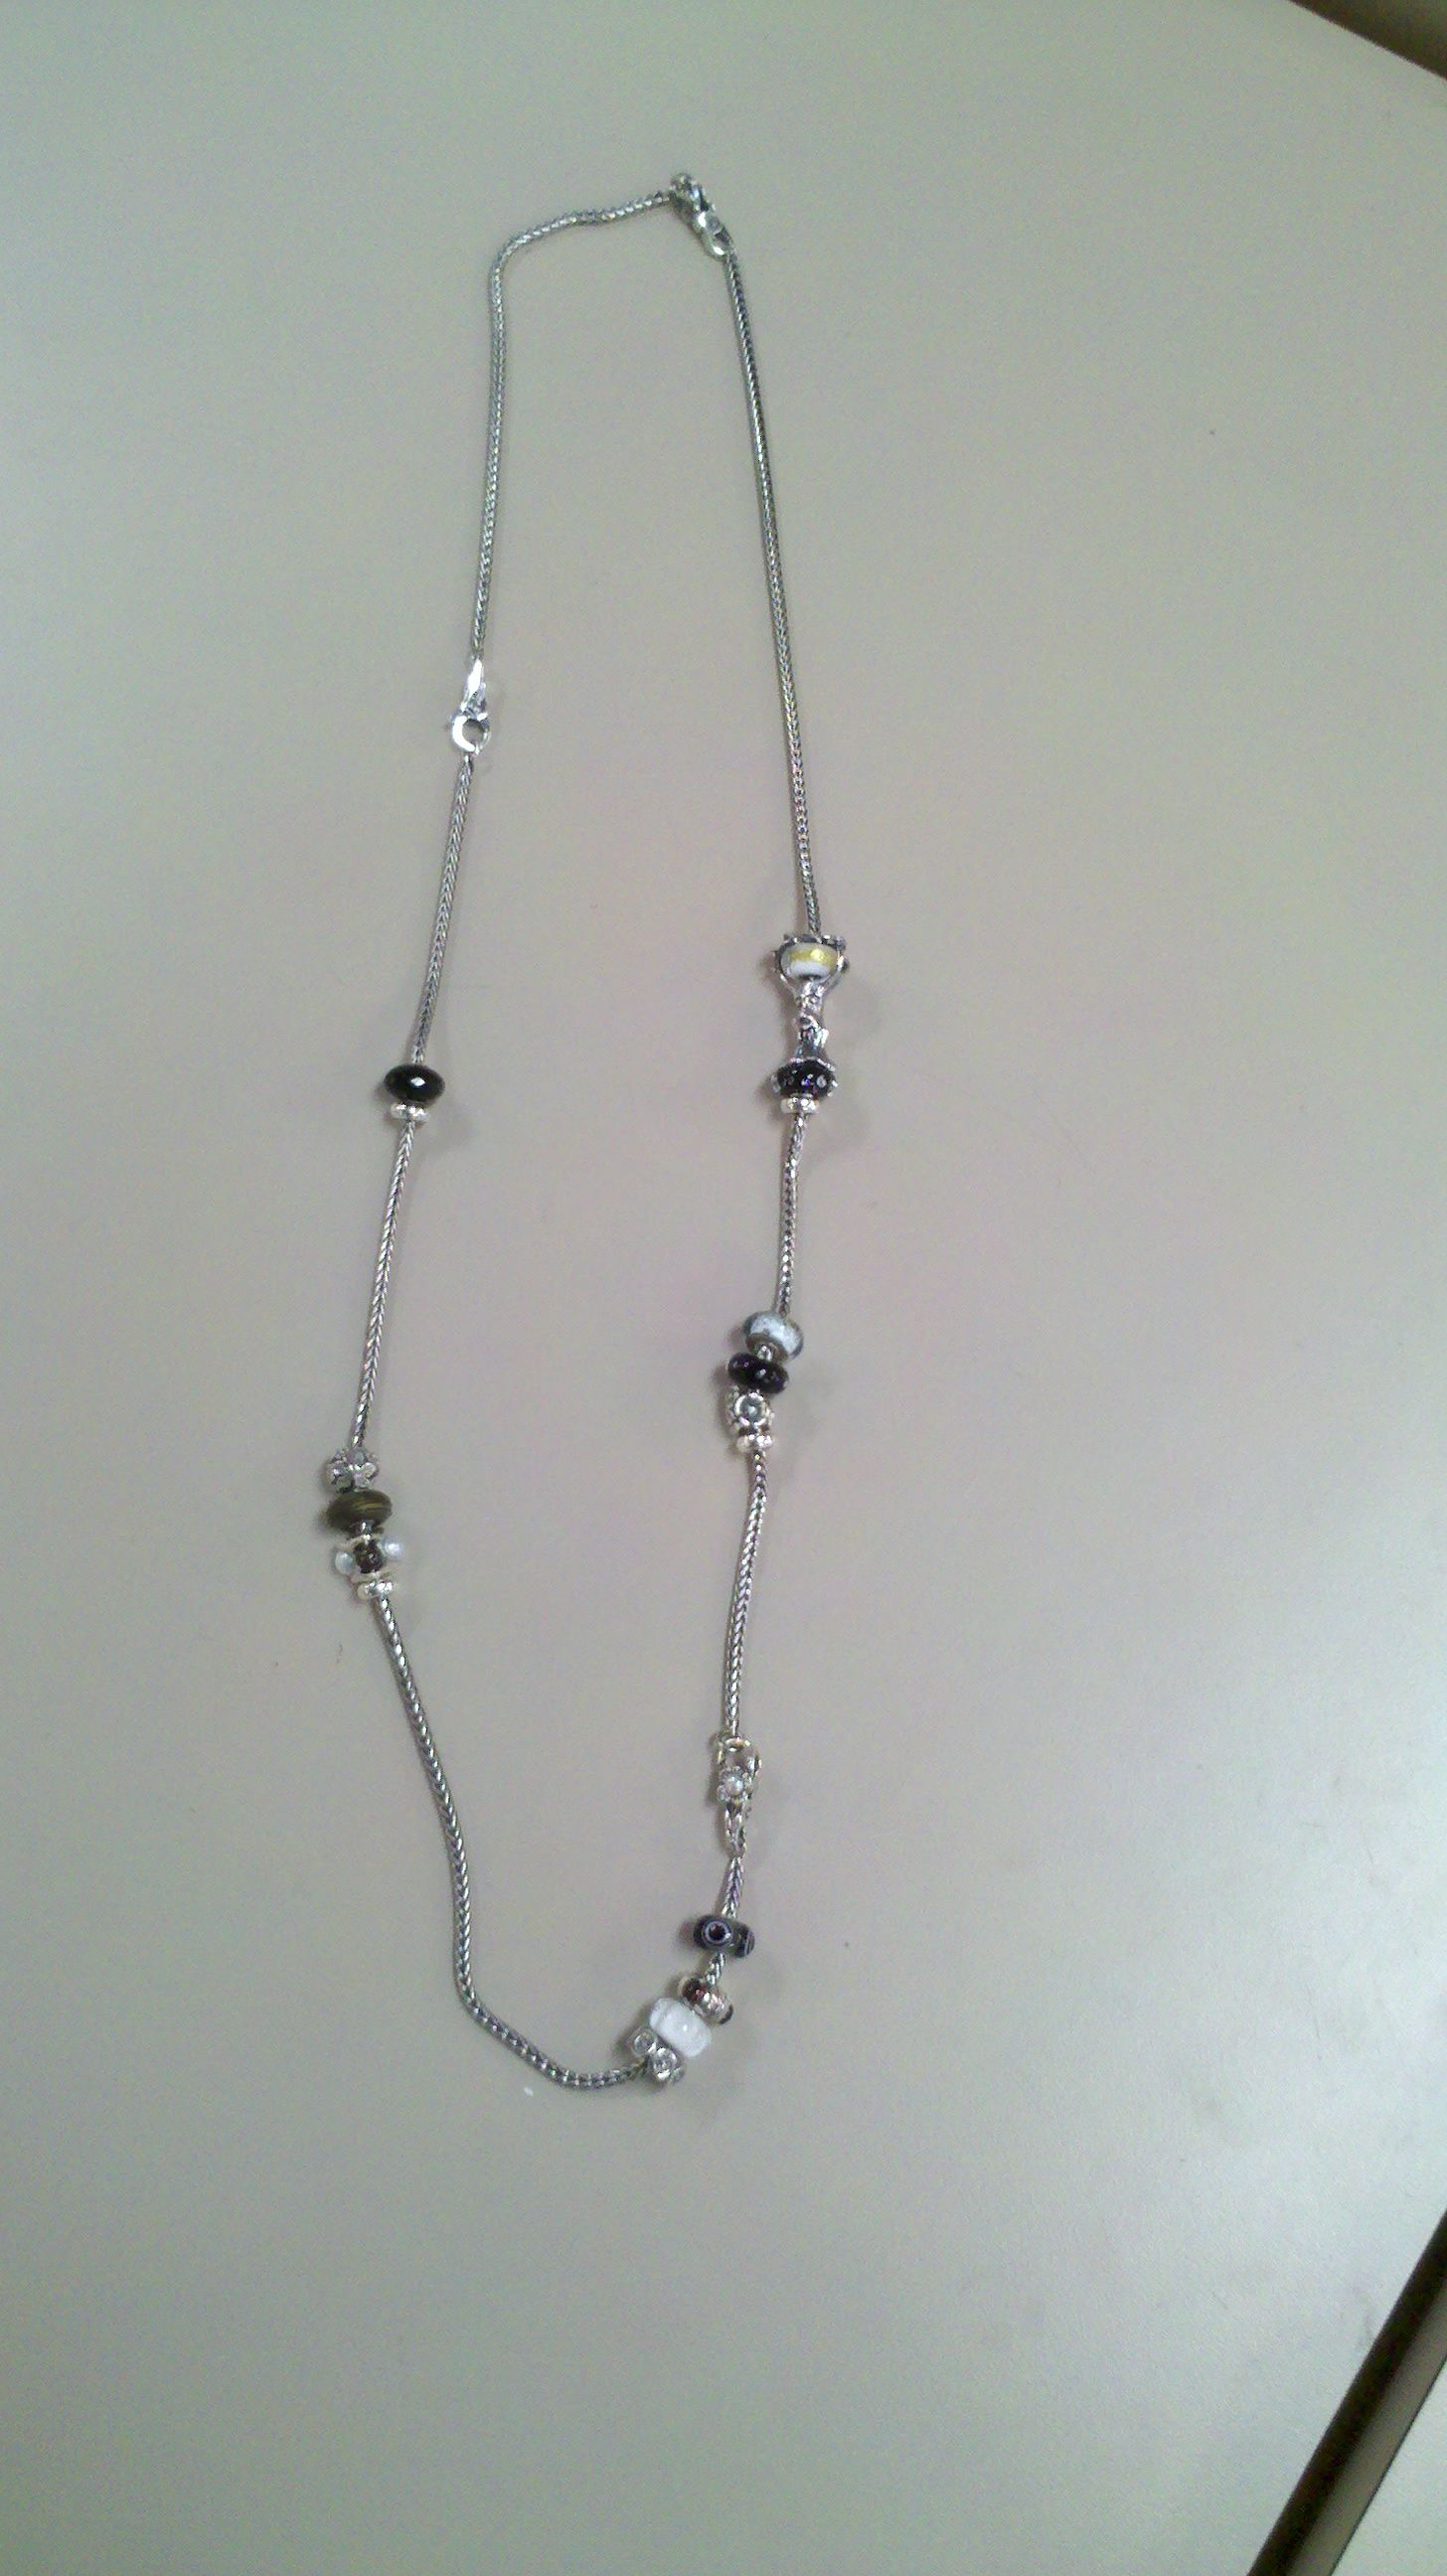 This is 2 trollbeads necklaces, a bracelet, and several clasps with some beads. Wear as a long necklace--this is a necklace that is on display at Vale Edge Florist (www.vale-edge.com)